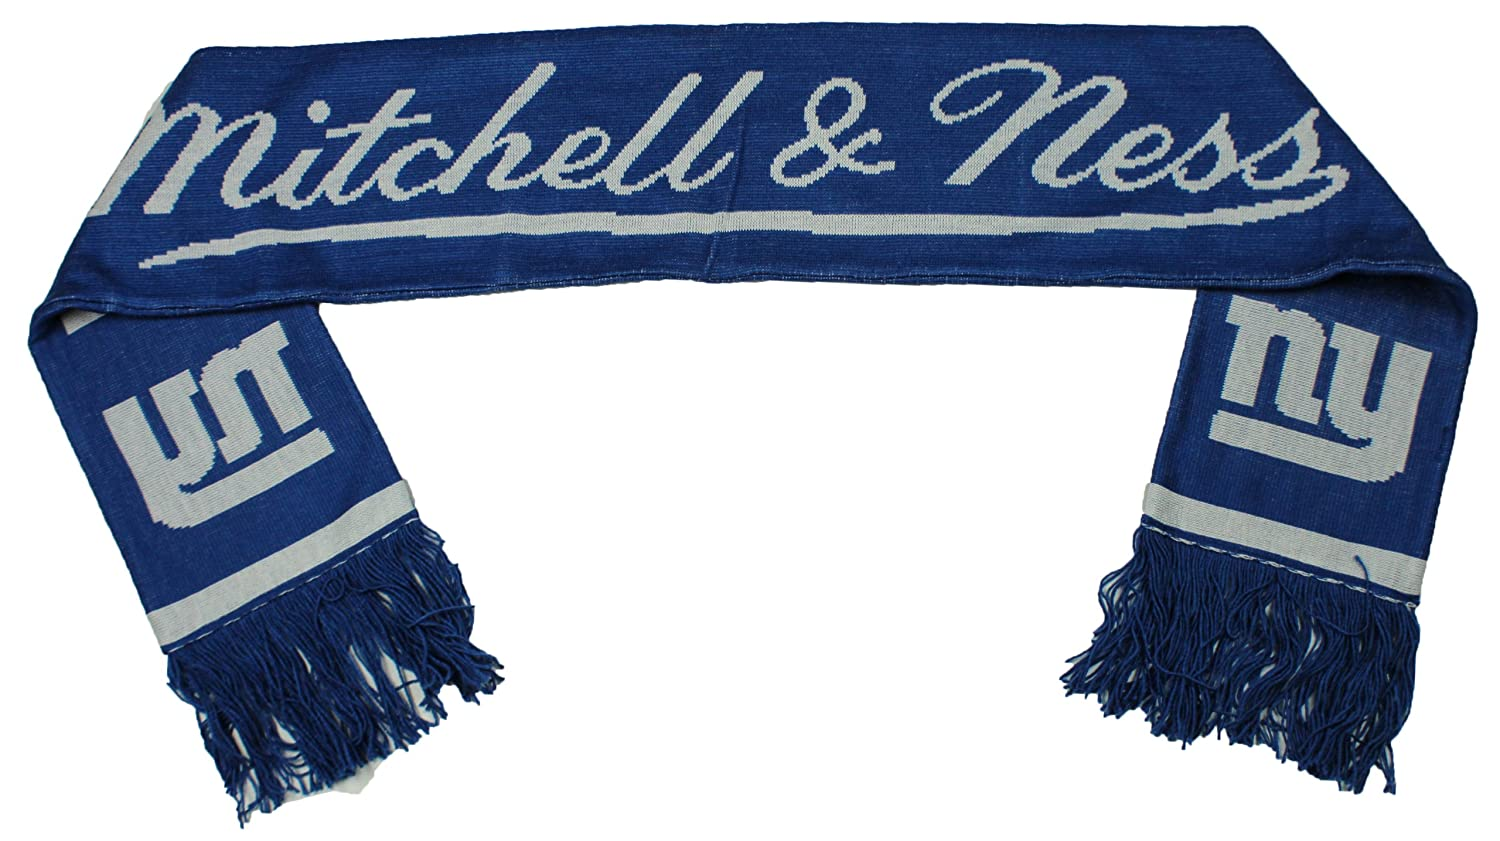 ef594237ce1c24 Amazon.com : New York Giants NFL Mitchell and Ness Scarf : Sports Fan  Scarves : Clothing